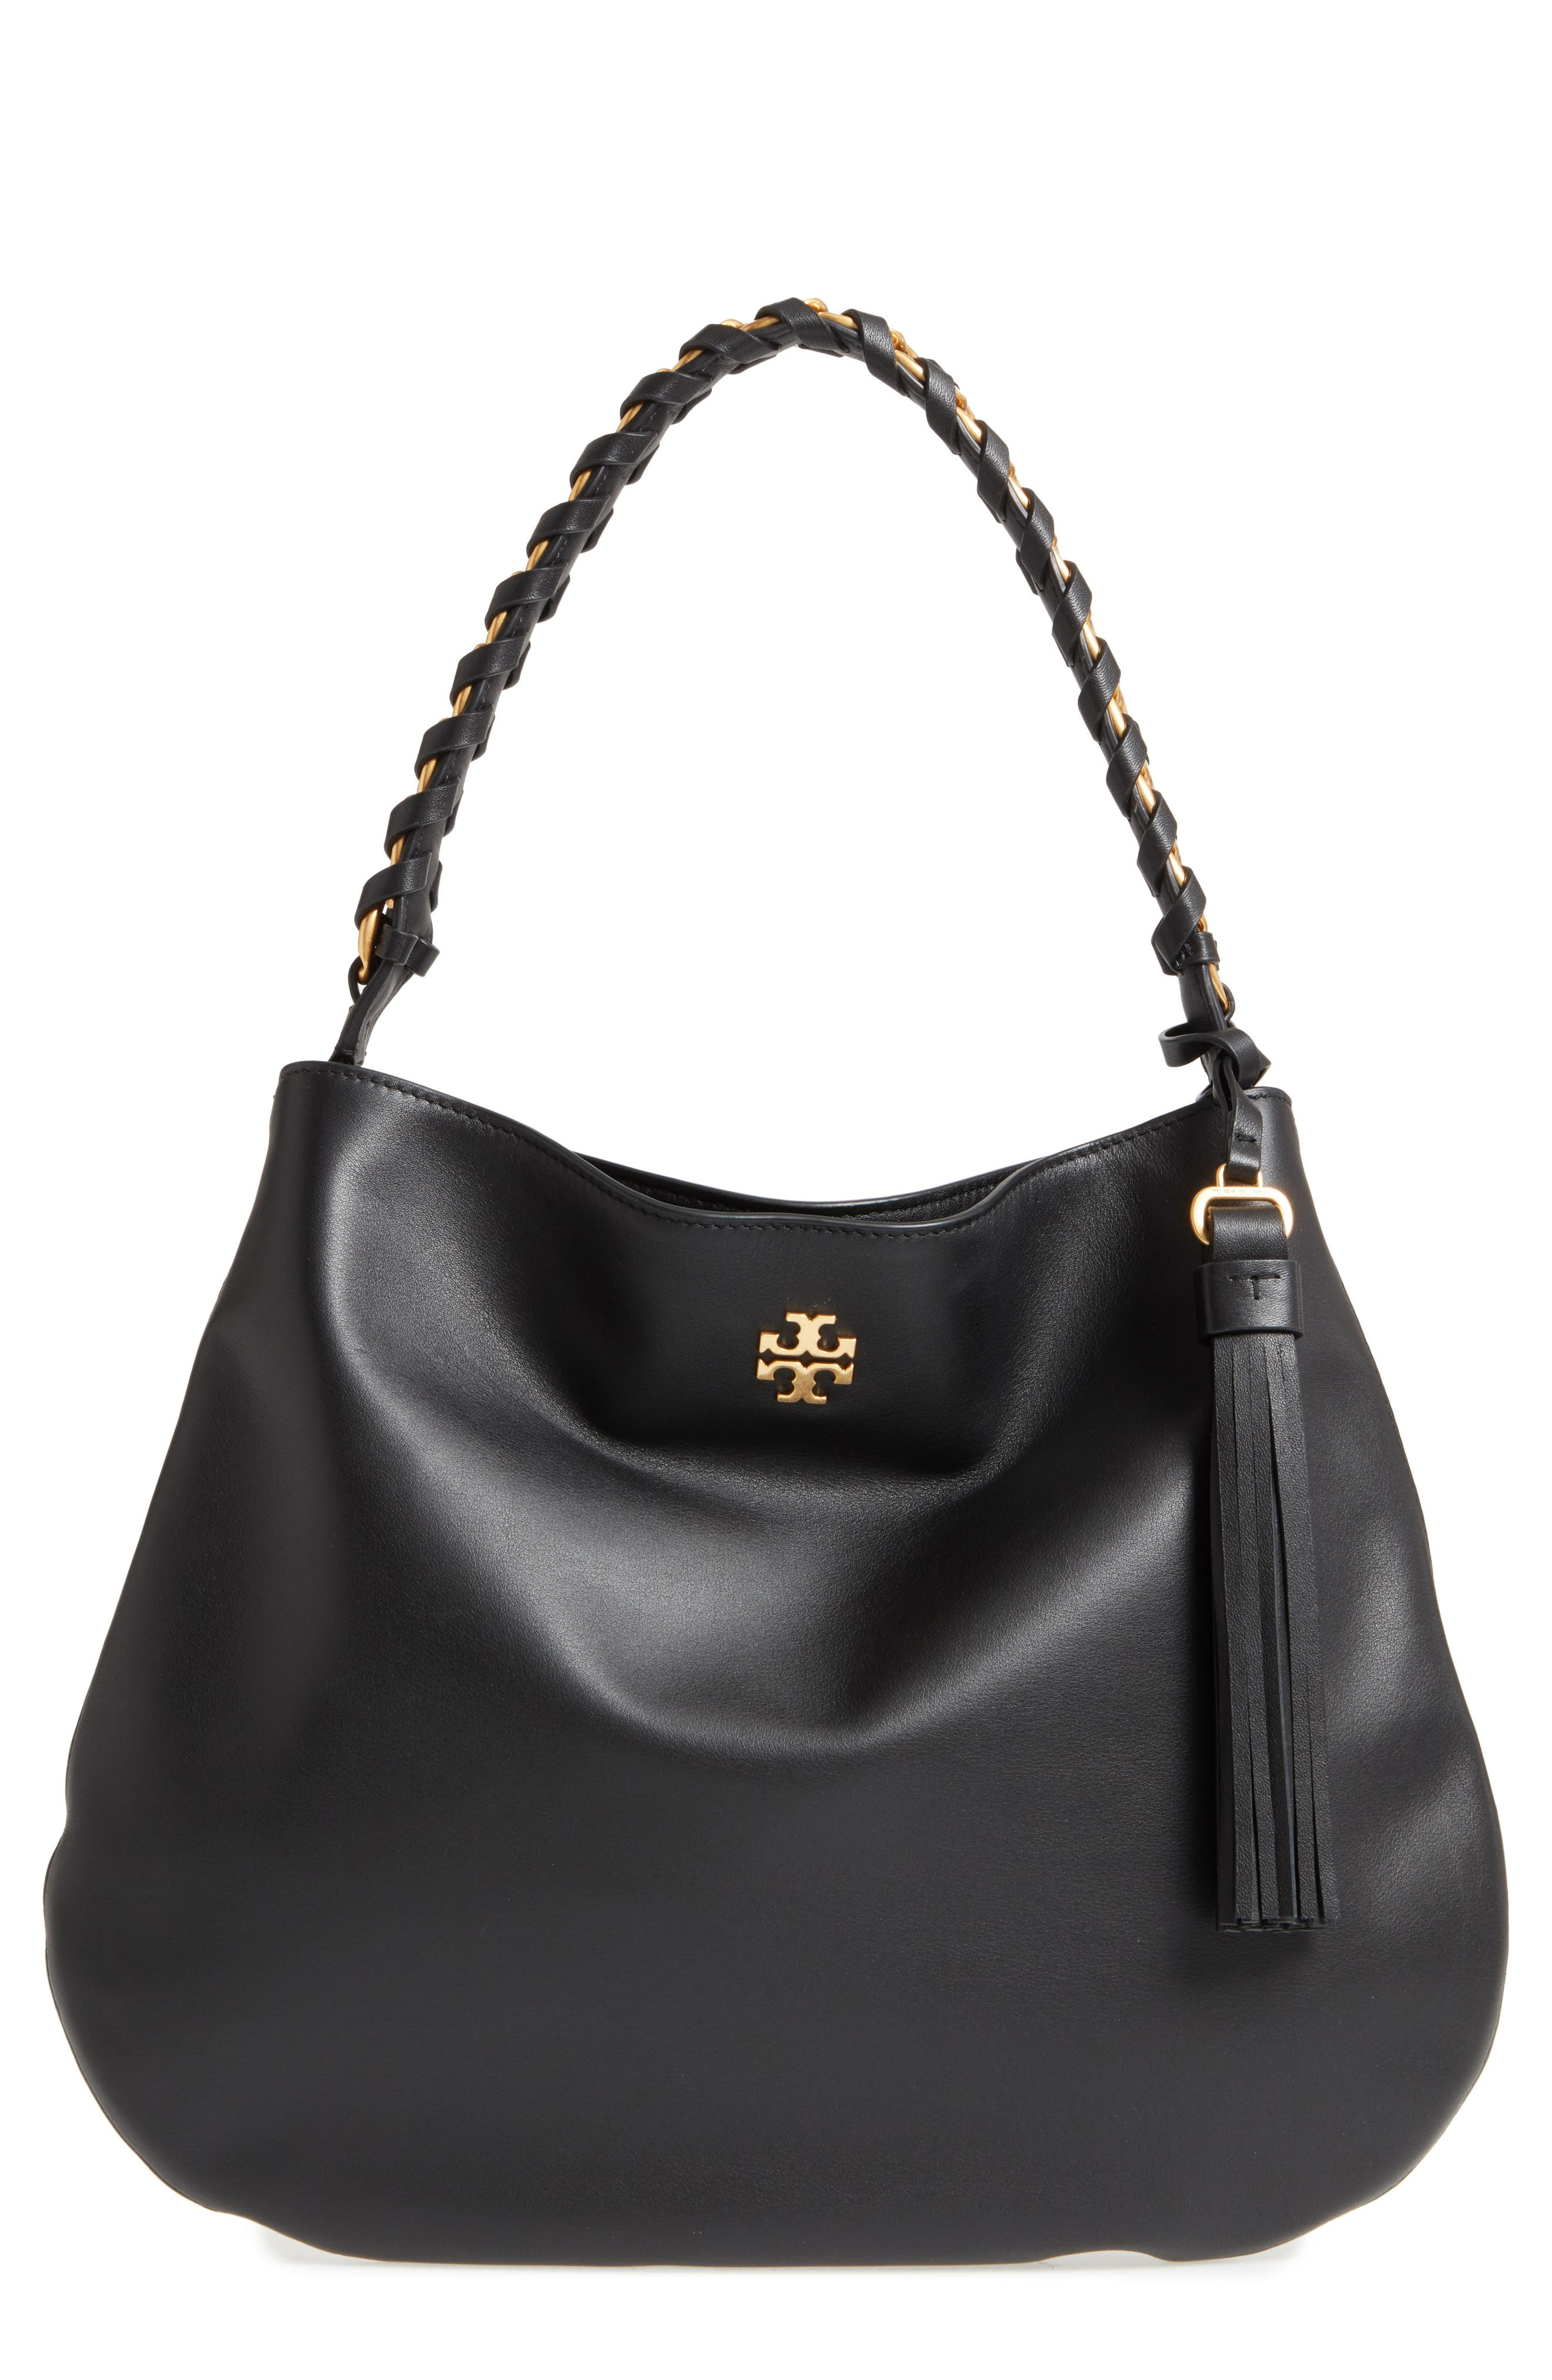 Alternate Image 1 Selected - Tory Burch Brooke Leather Hobo